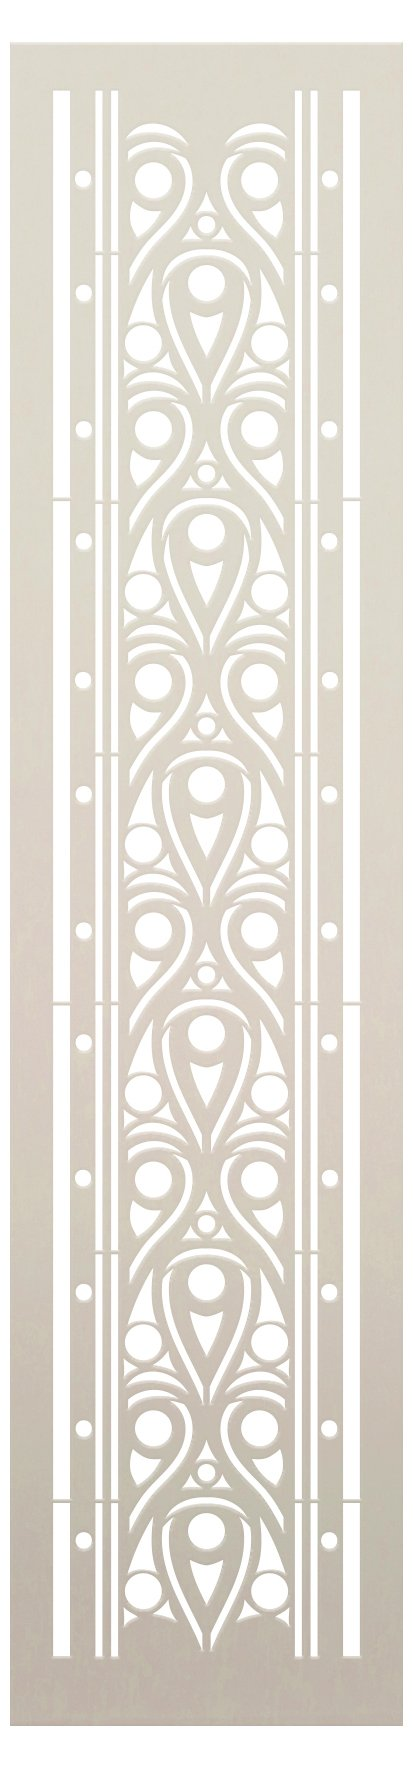 Egyptian Ornamental Water Band Stencil by StudioR12   Craft DIY Ornamental Pattern Home Decor   Paint Wood Sign   Reusable Template   Select Size